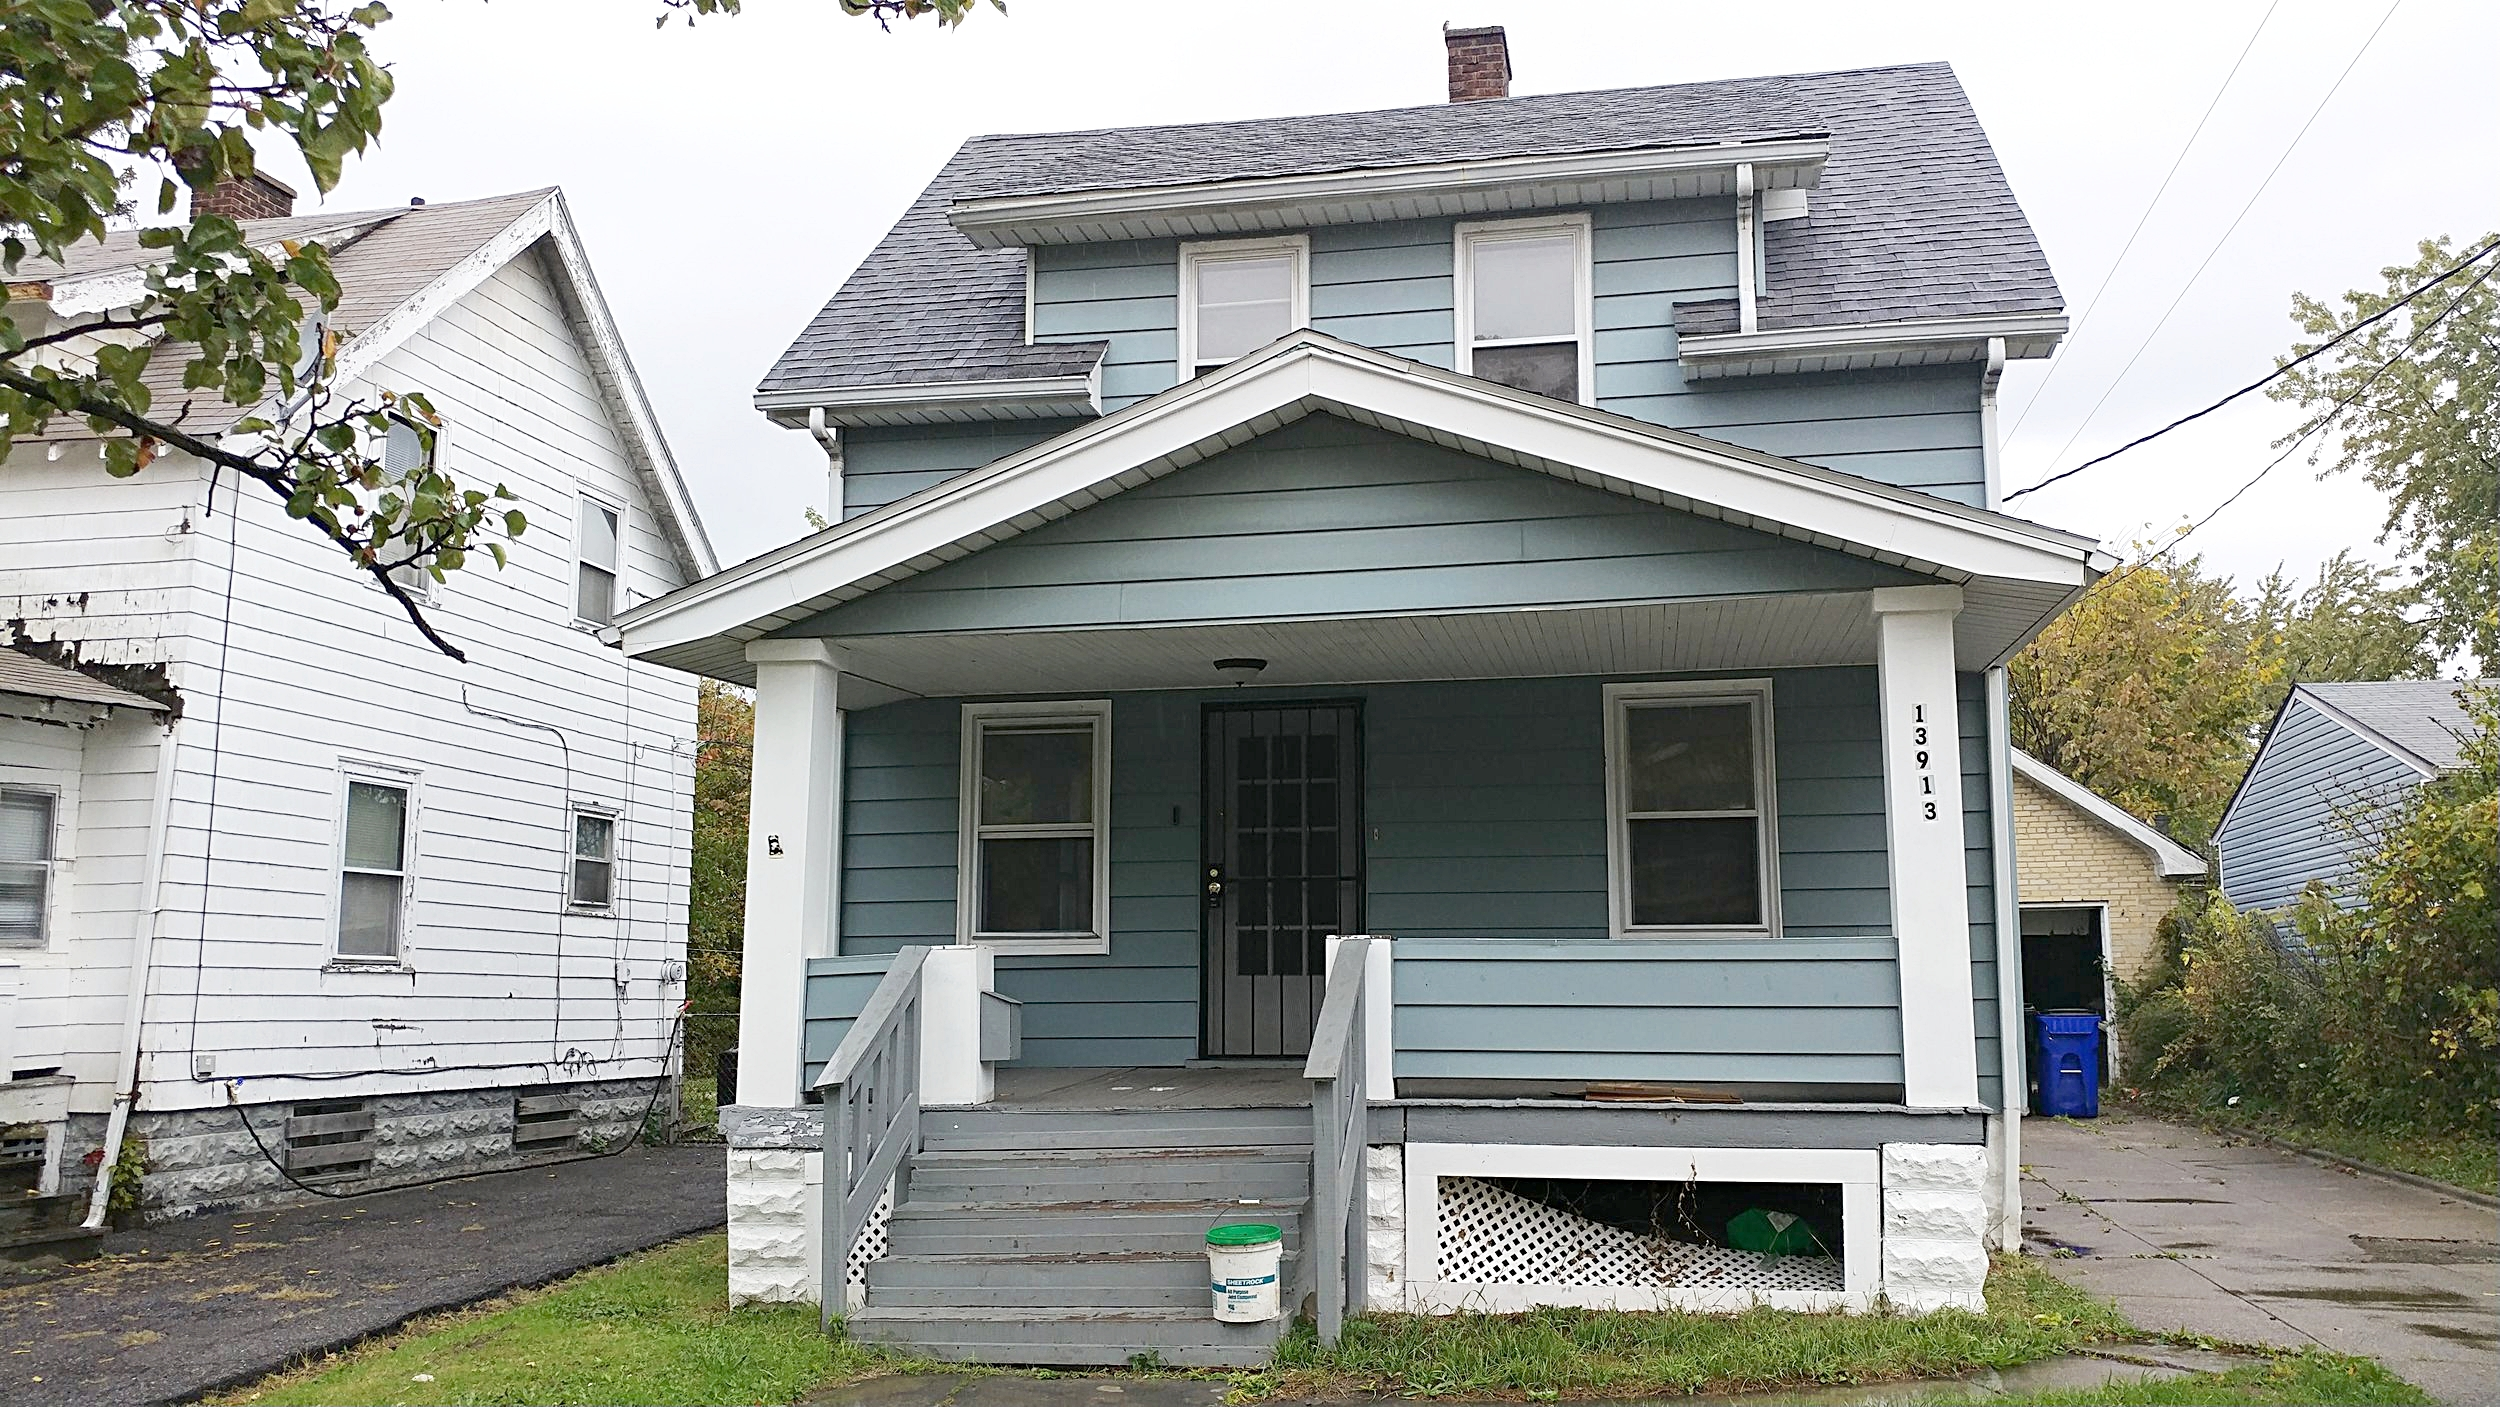 13913 Melzer Ave., Cleveland |2 bed 1 bath | 968 Sq. Ft. | $16,250